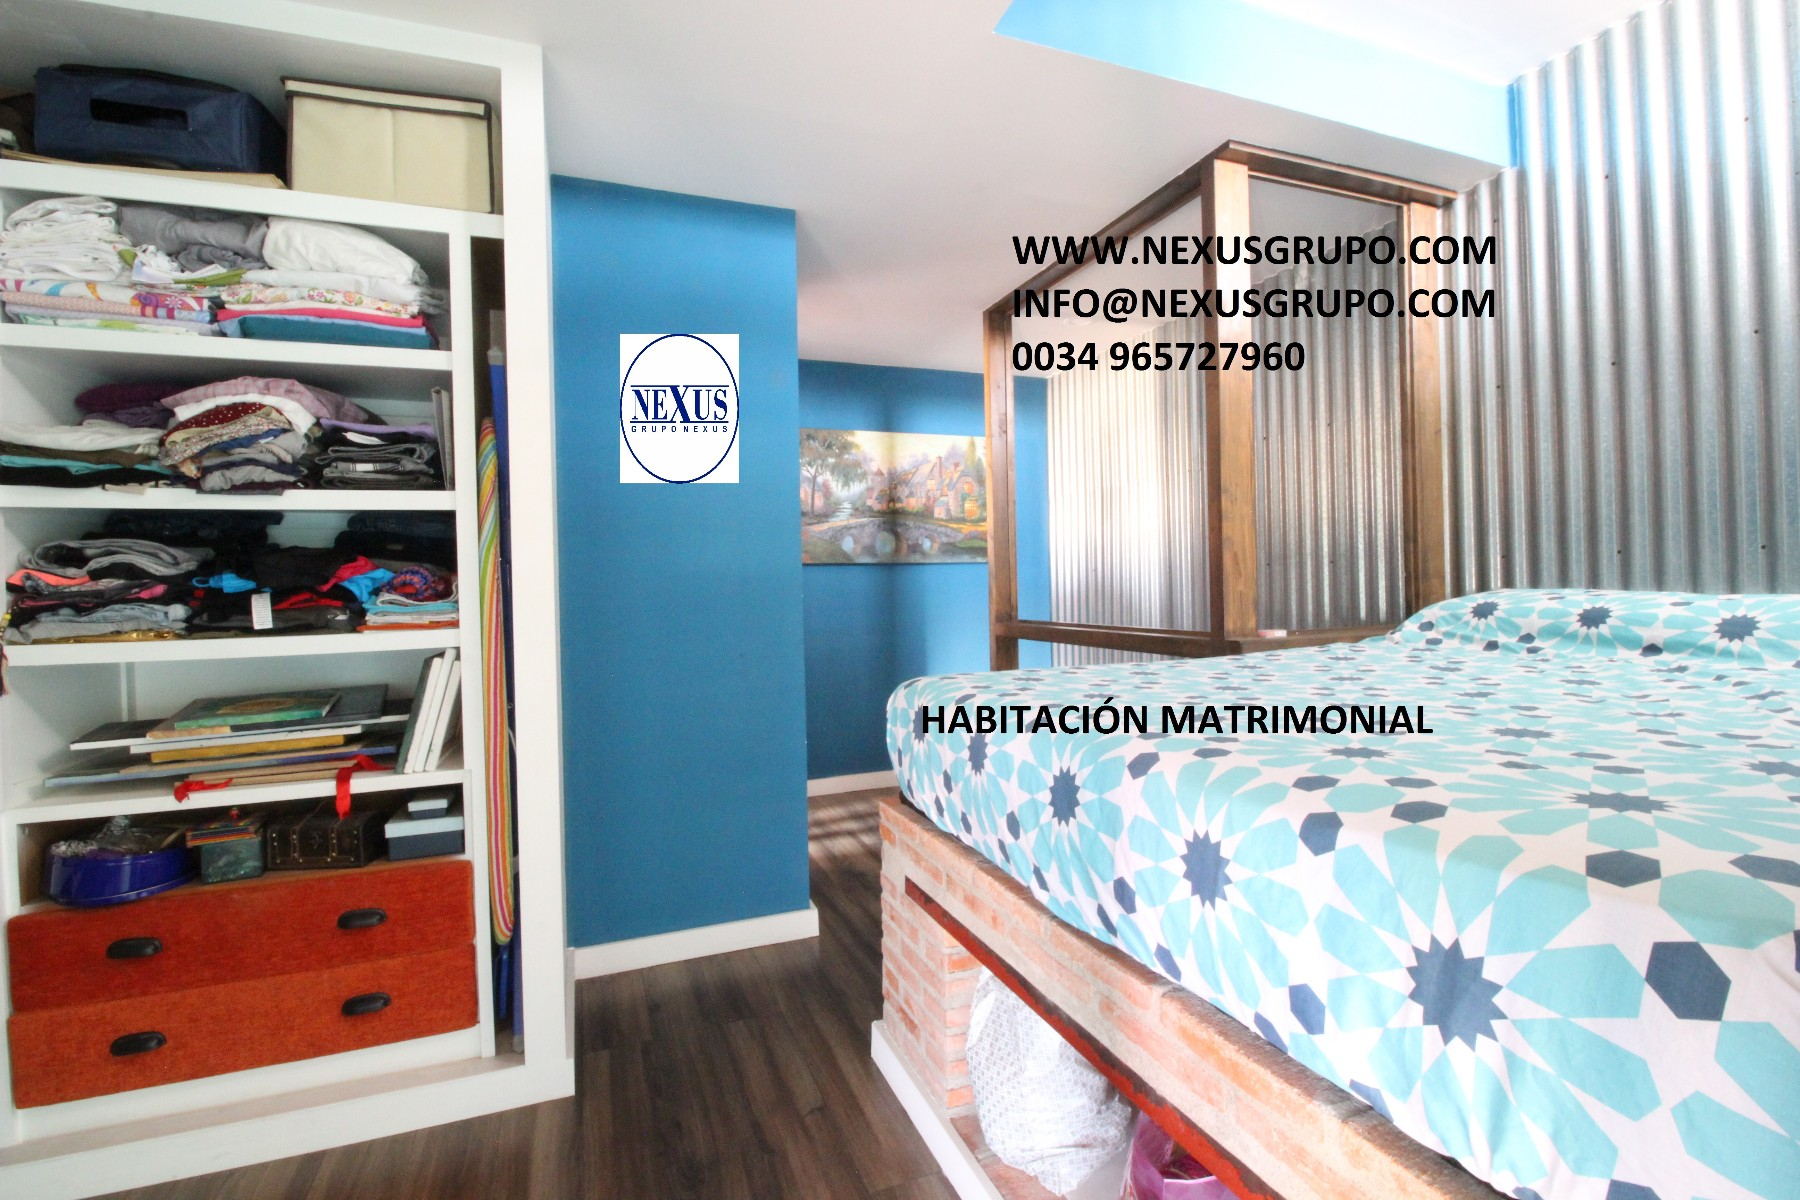 Inmobiliaria Grupo Nexus, Sells, Excellent semi-detached house in the Bañet de Almoradí in Nexus Grupo